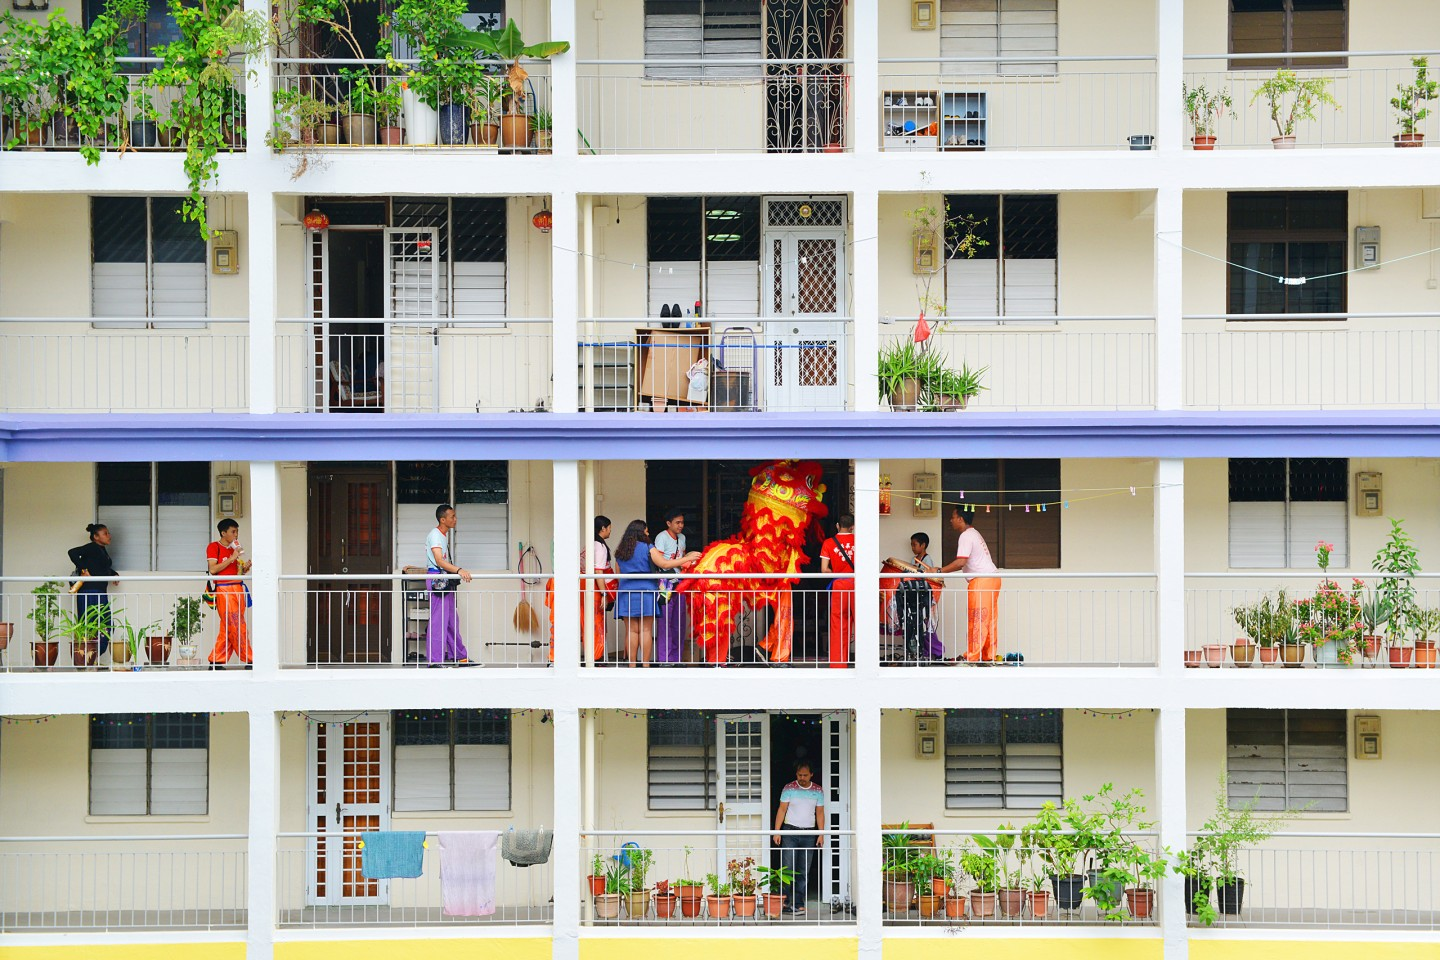 Overseas Chinese start to see themselves as Chinese overseas; their national identity is no longer tied to China, but to their naturalised countries. This photo shows a lion dance troupe performing at an HDB block during Chinese New Year. It demonstrates a uniquely Singaporean Chinese identity. (Photo: Hang Loo Ming)